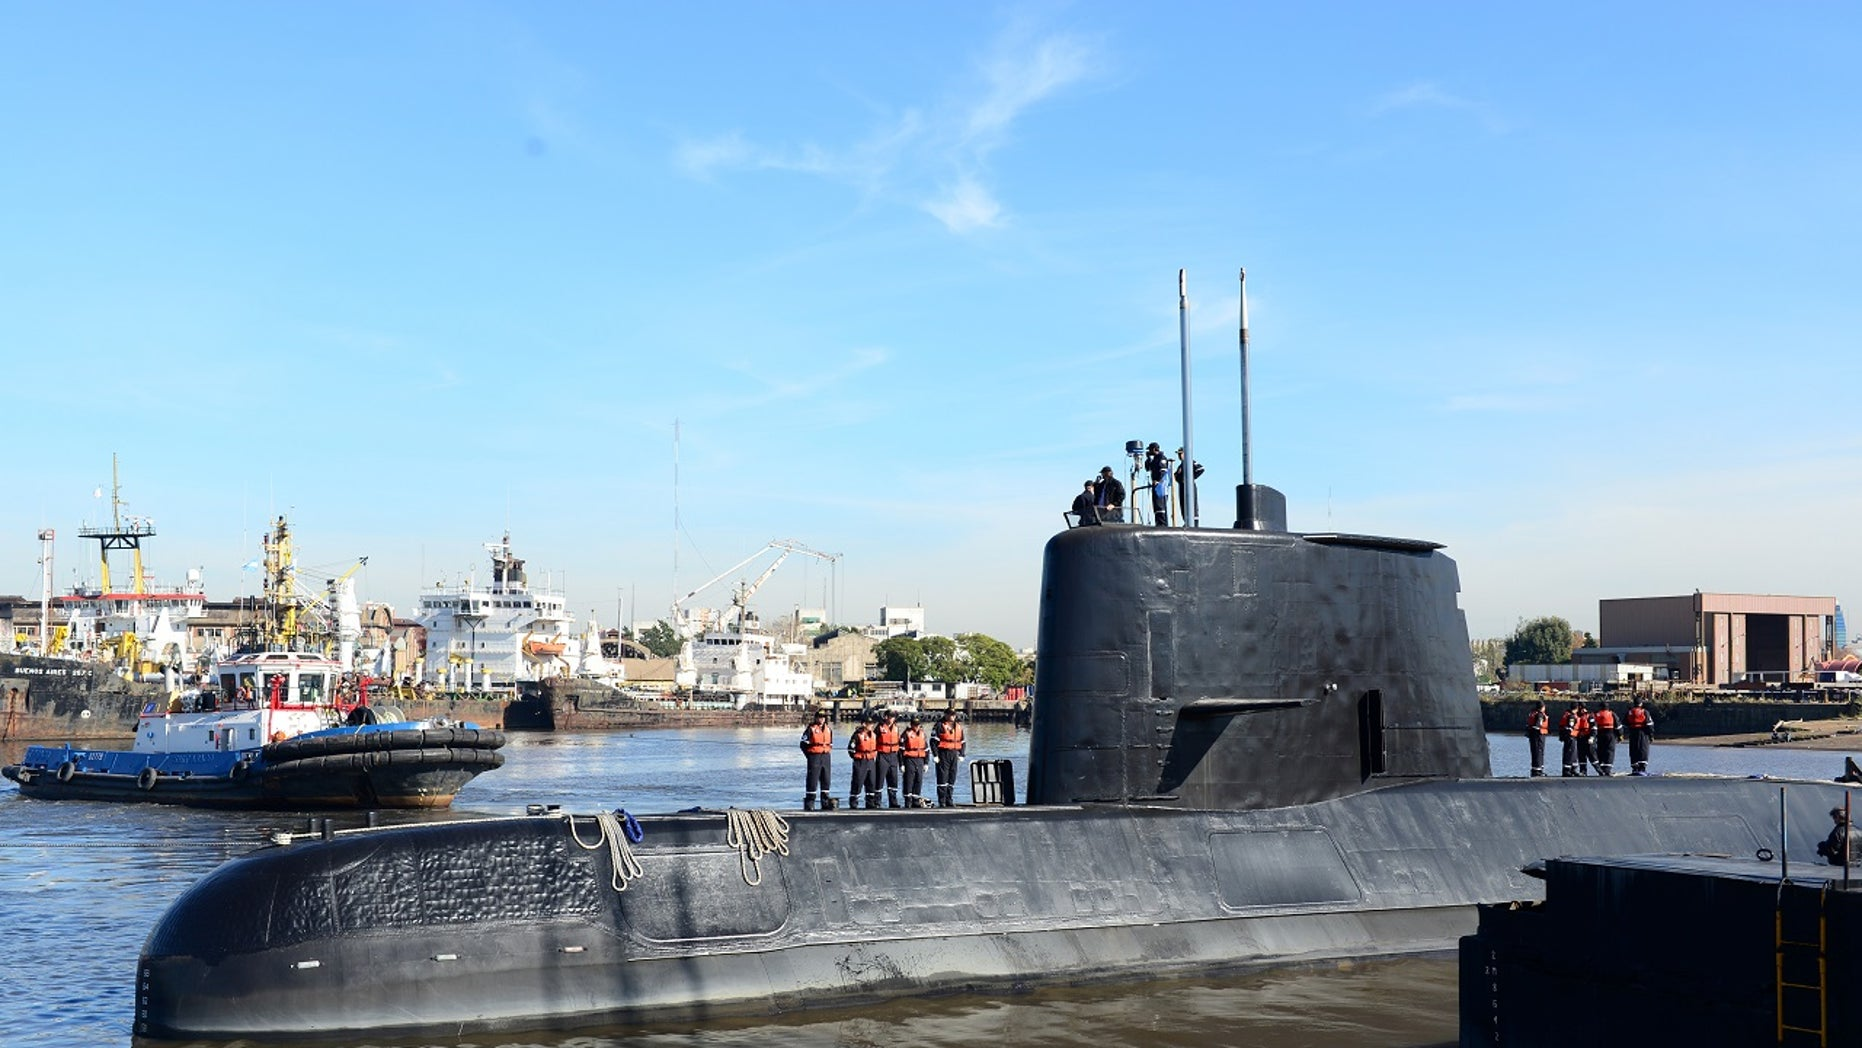 The ARA San Juan, an Argentine submarine with 44 crew members aboard, went missing Wednesday. The U.S. Navy will assist in a search.